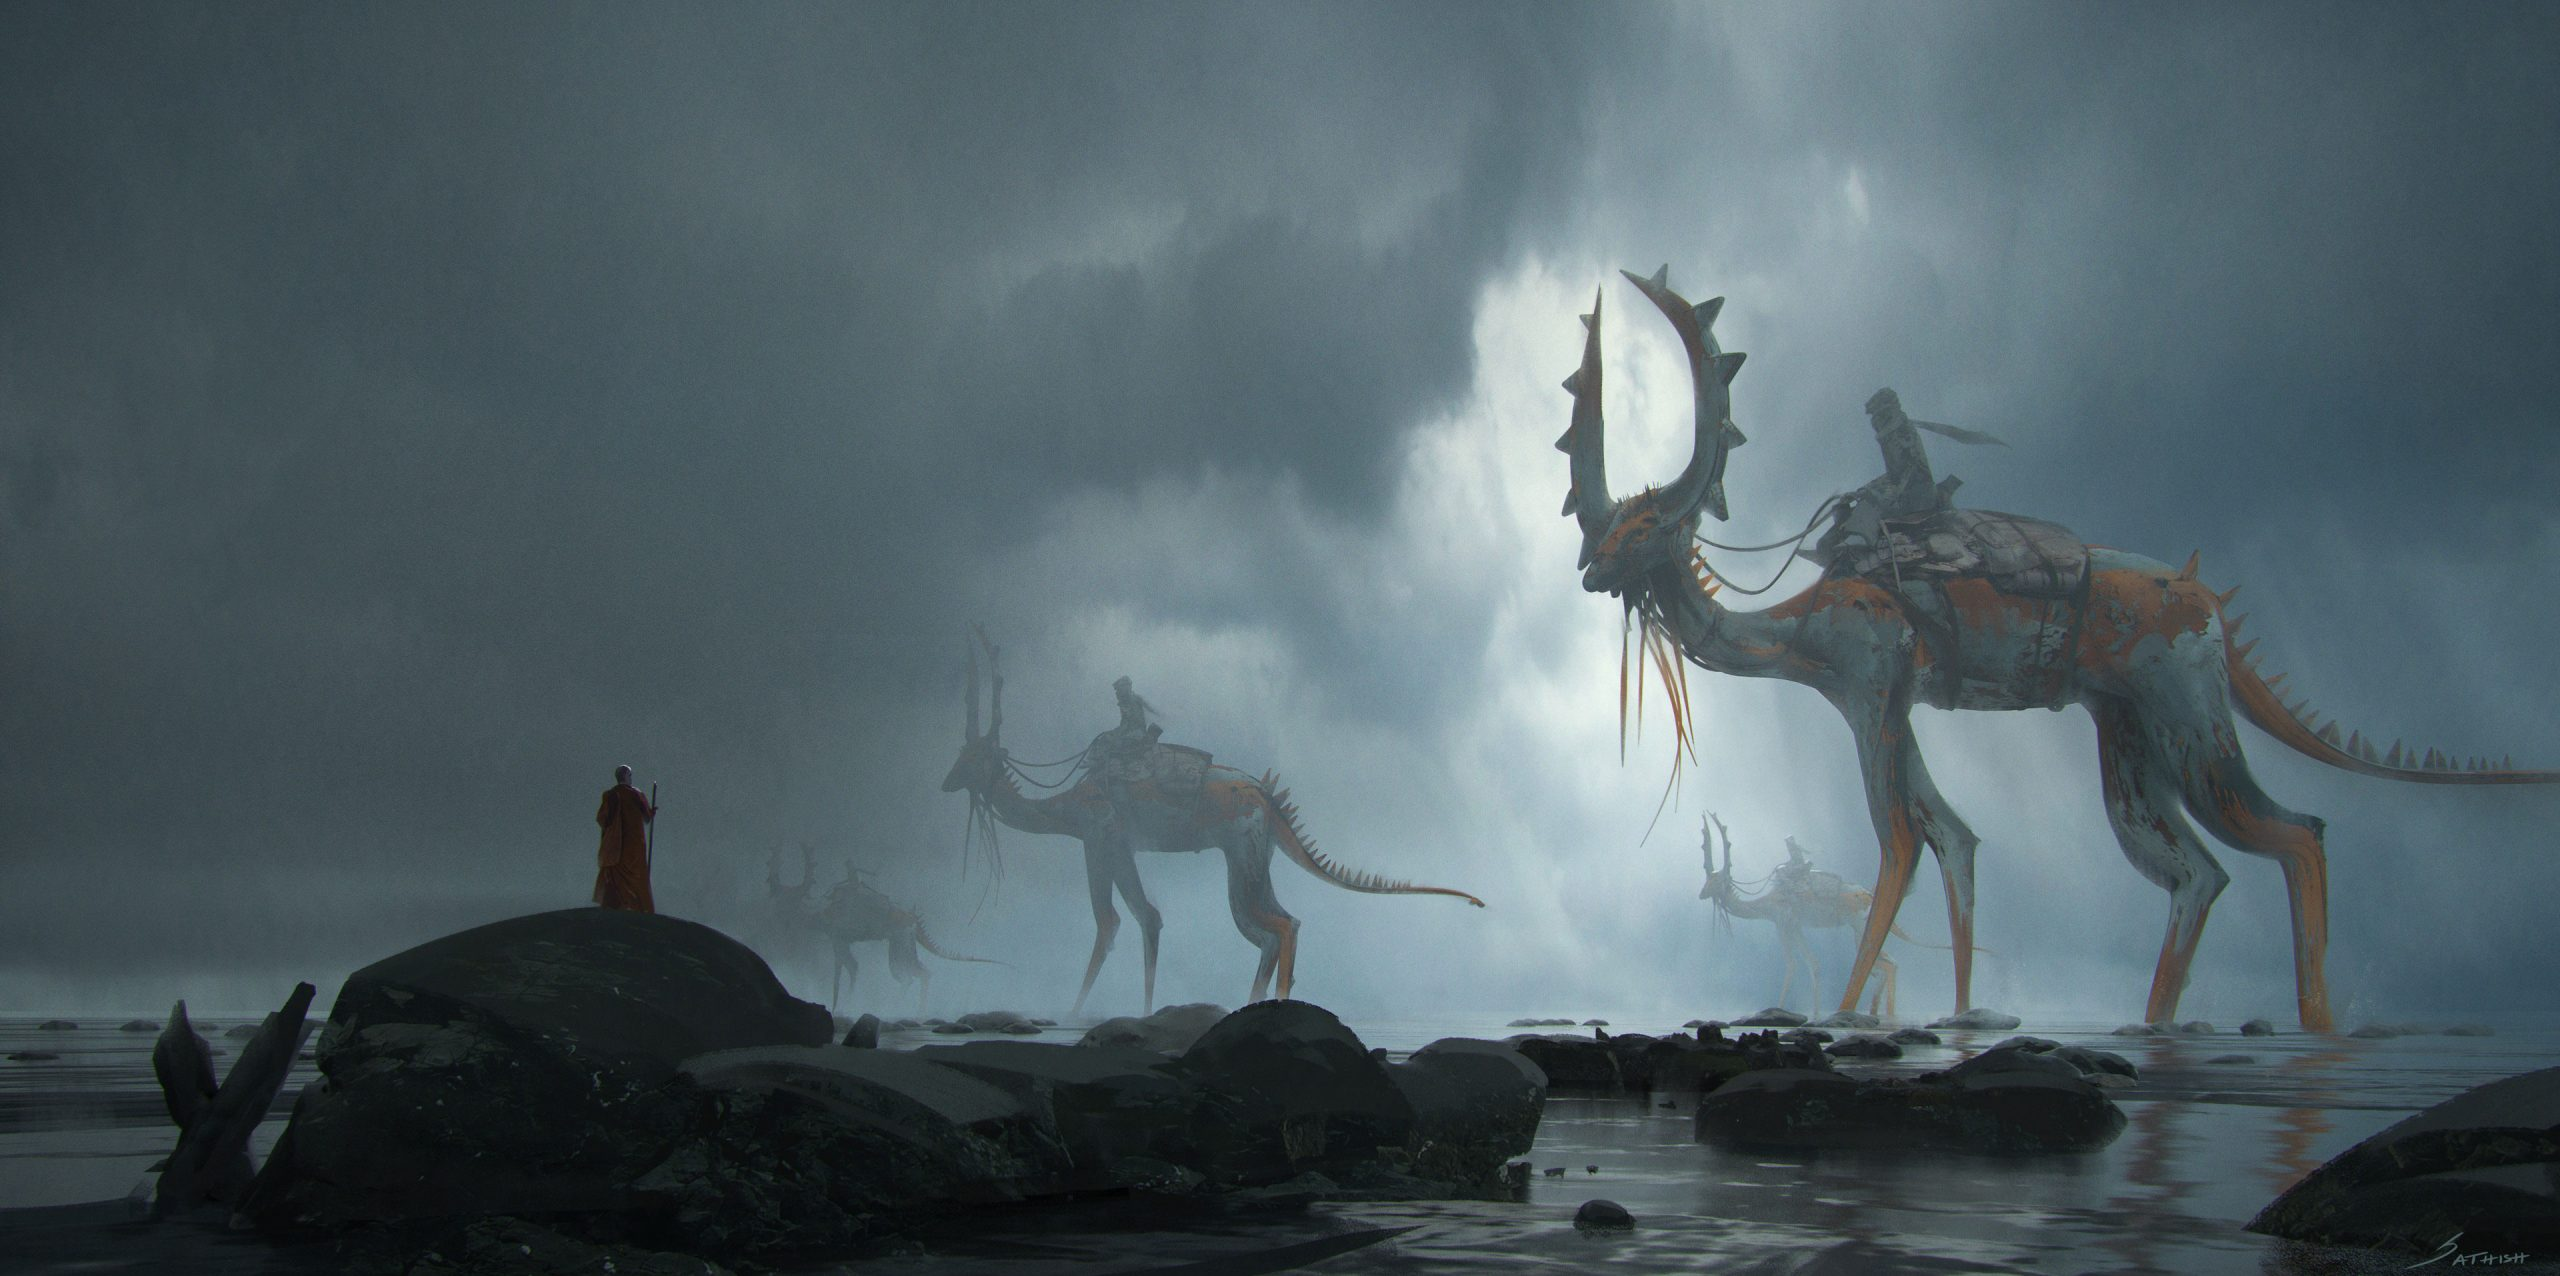 The Sci-Fi Sketches and Concept Art of Sathish Kumar